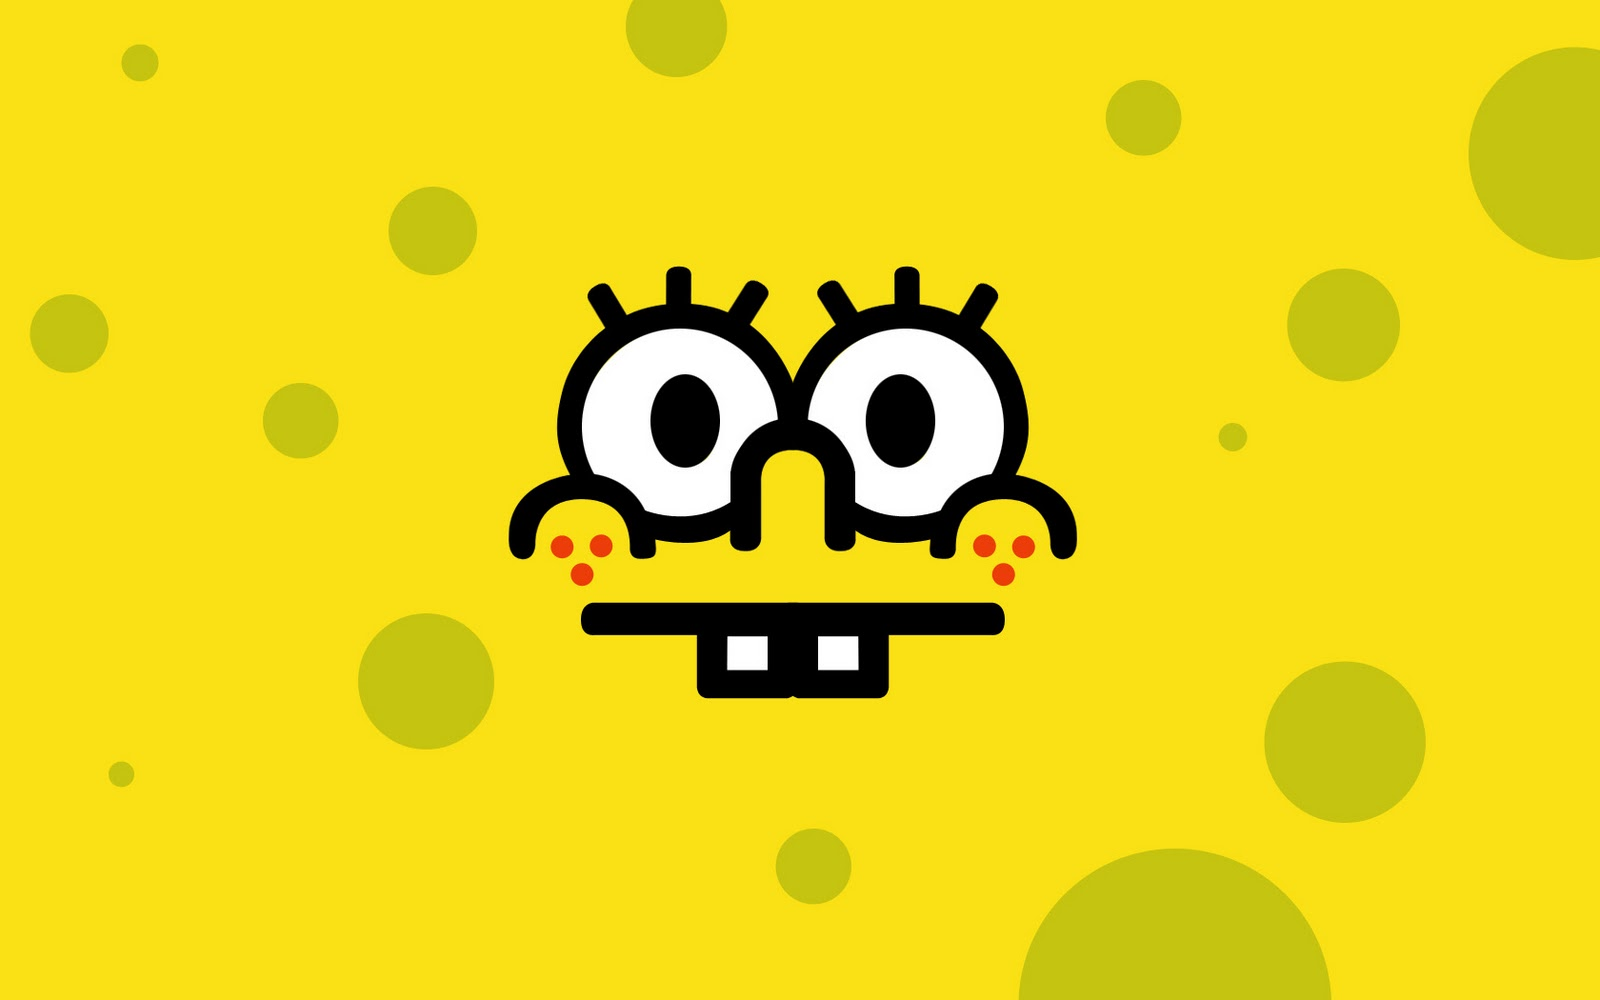 Spongebob_BAPE_HD_wallpaper.jpg